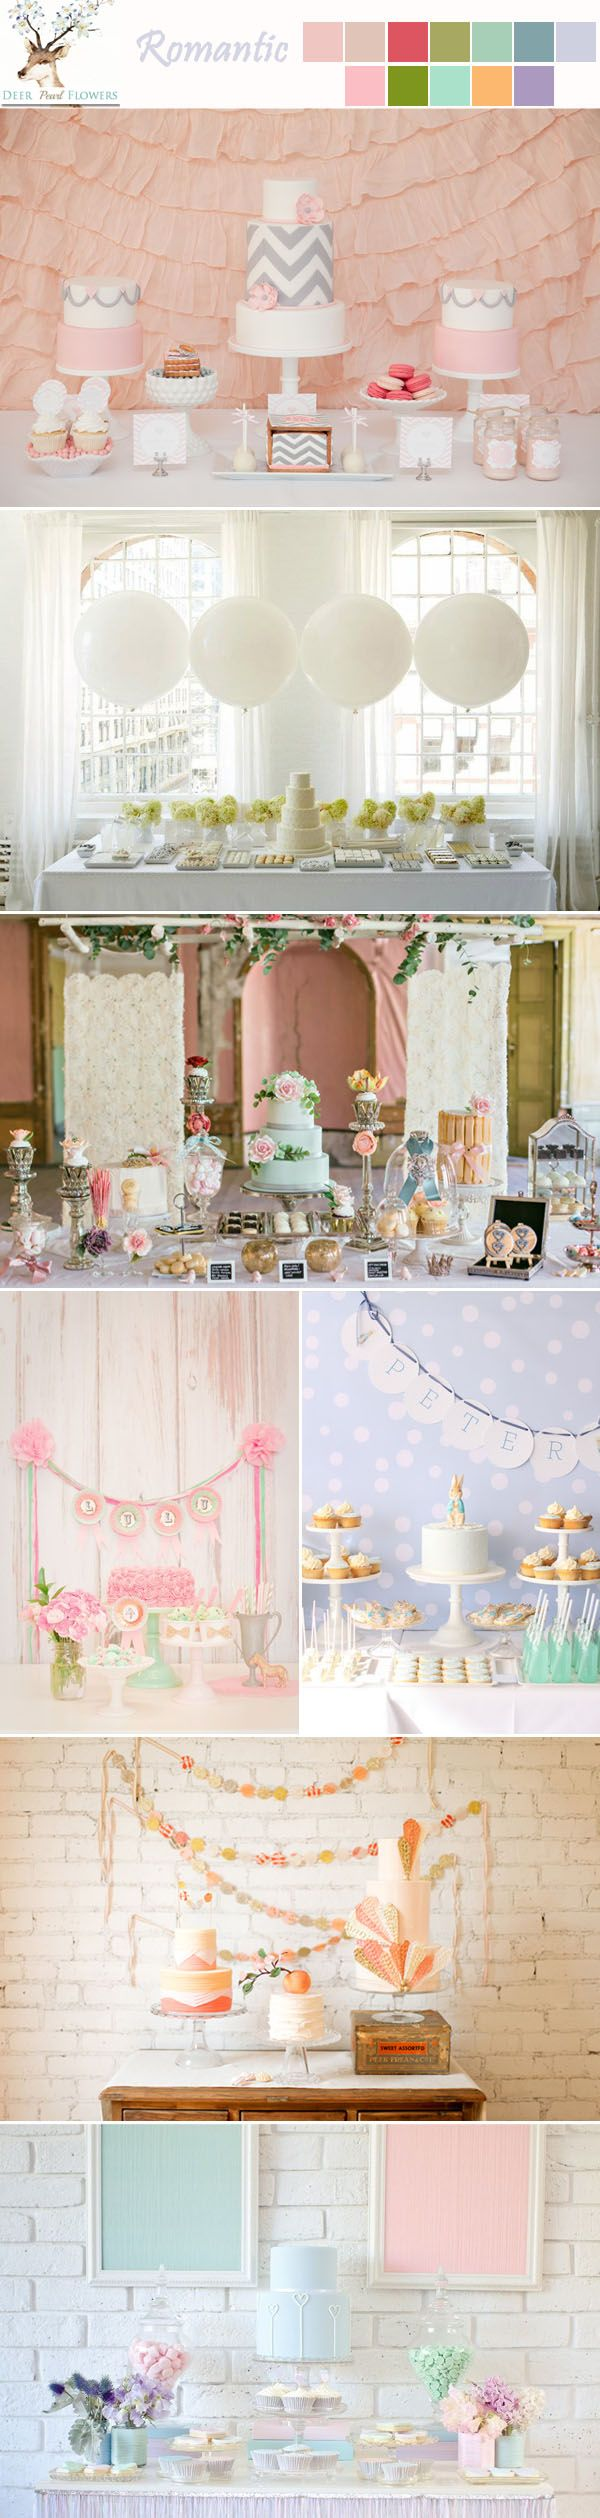 Light blue wedding decoration ideas  Best  Wedding deco ideas images on Pinterest  Candy stations